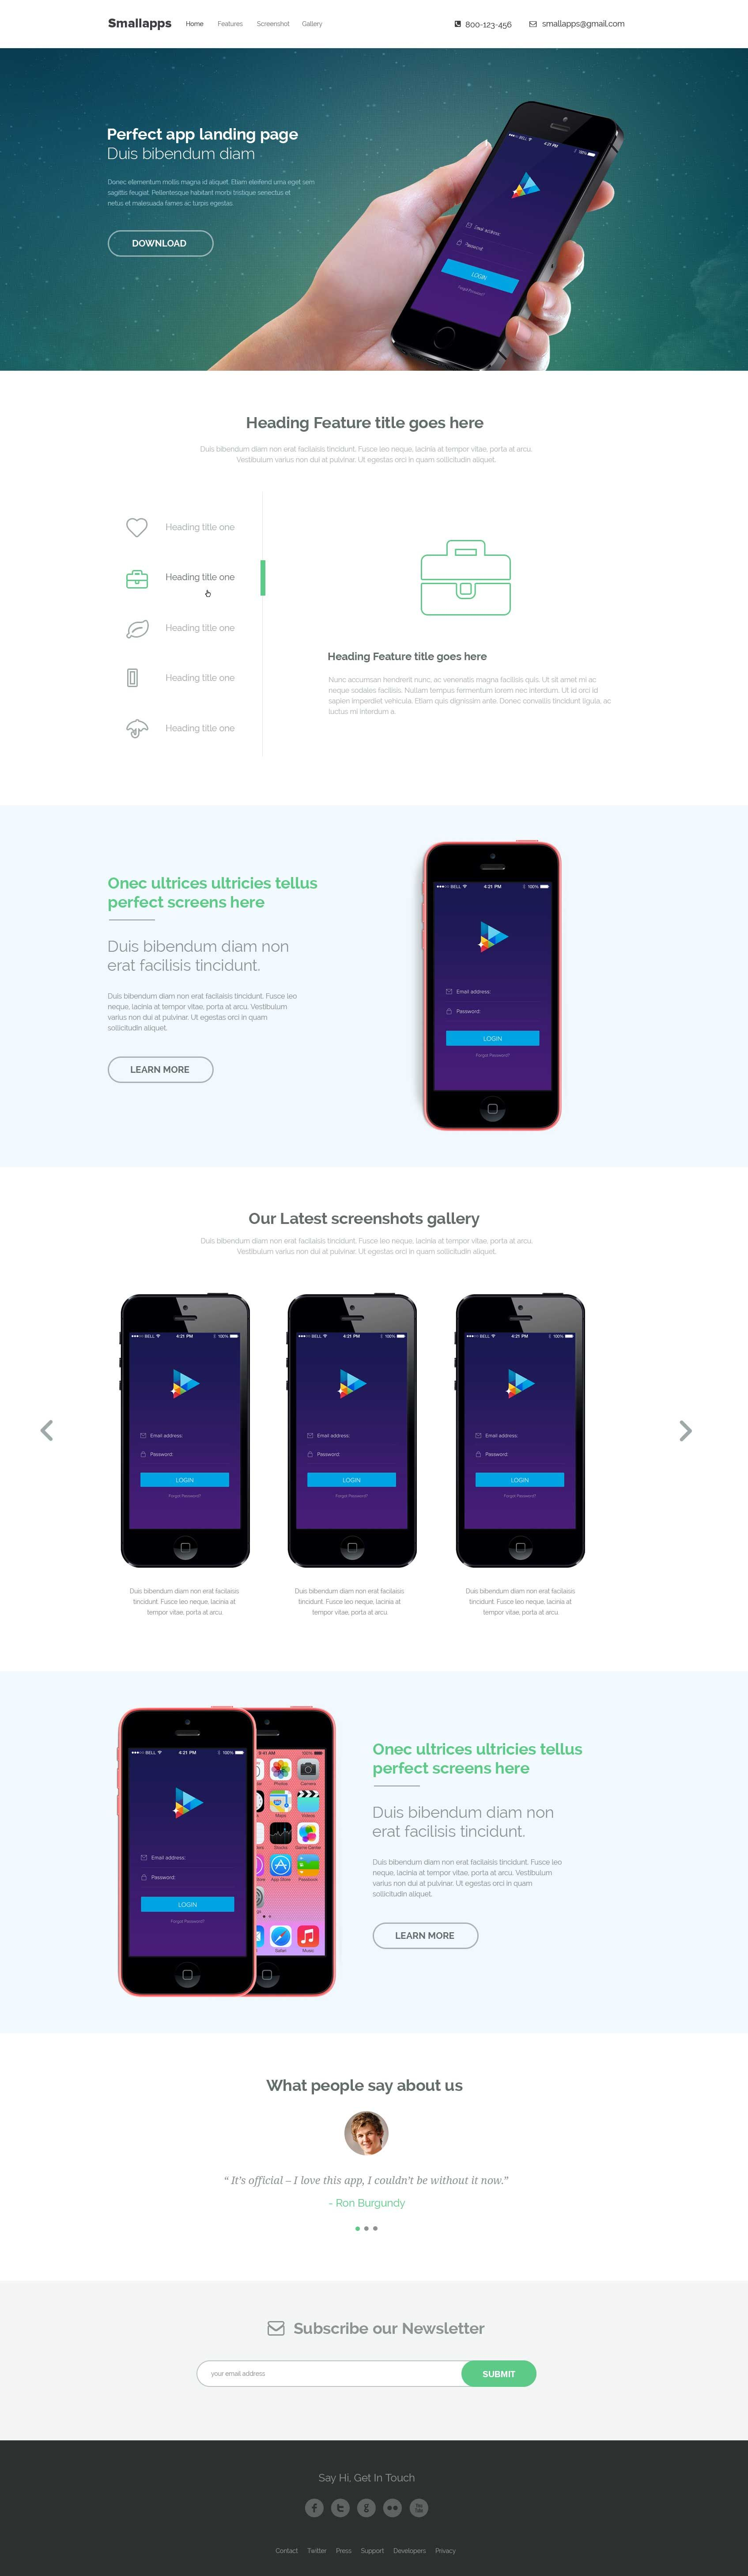 Github Themefisher Small Apps Onepage Html5 App Landing Page Smart App Is A Creative Web Design Mobile Web Design Web Design